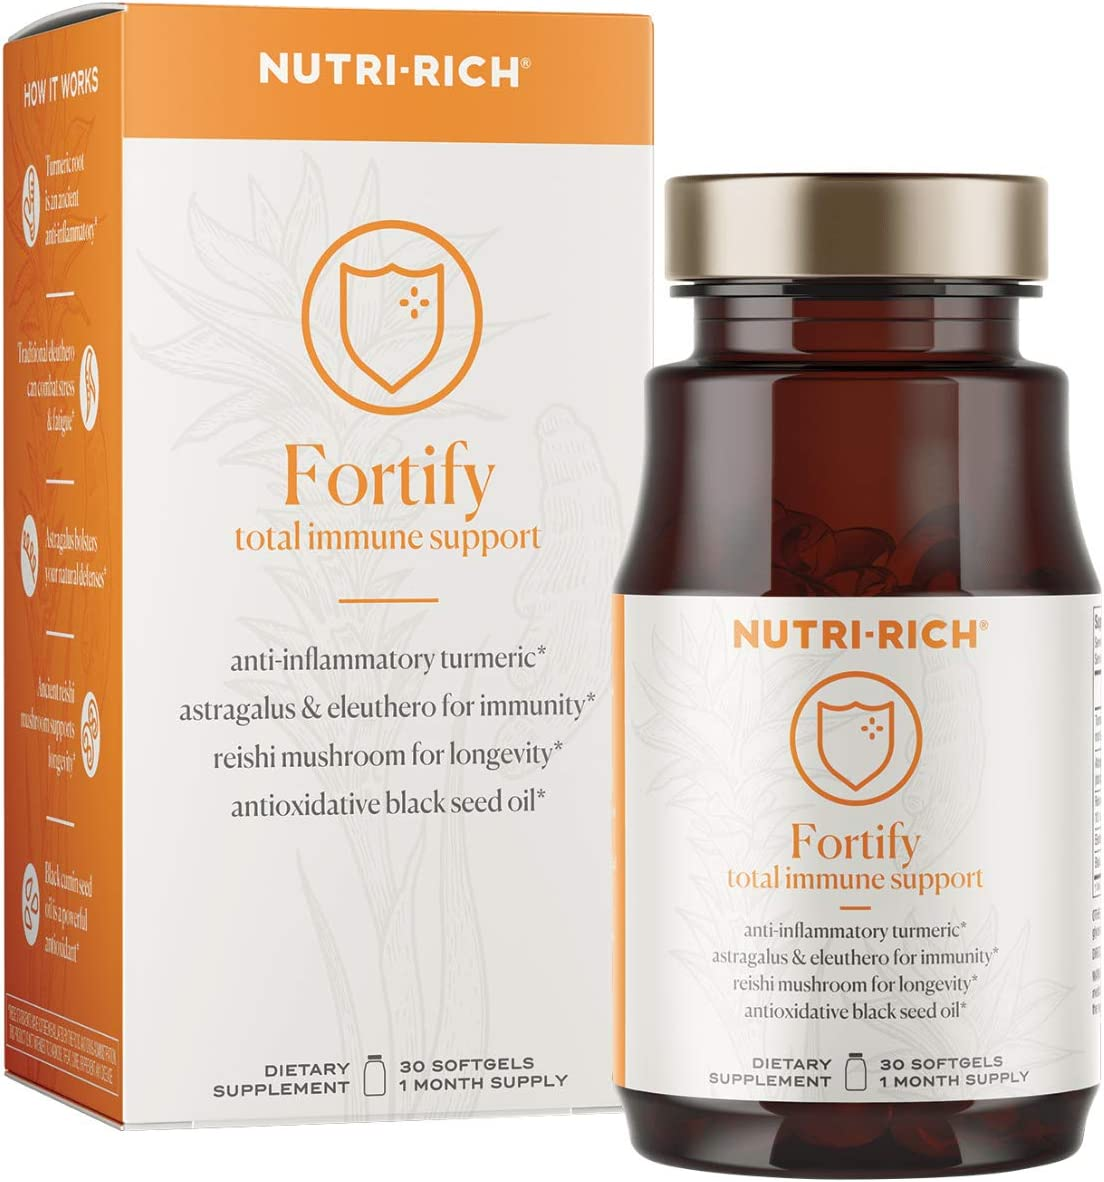 Fortify Adaptogens for Immunity, Inflammation, Cell Damage Curcumin, Black Seed Oil, Reishi Mushroom, Astragalus, Eleuthero